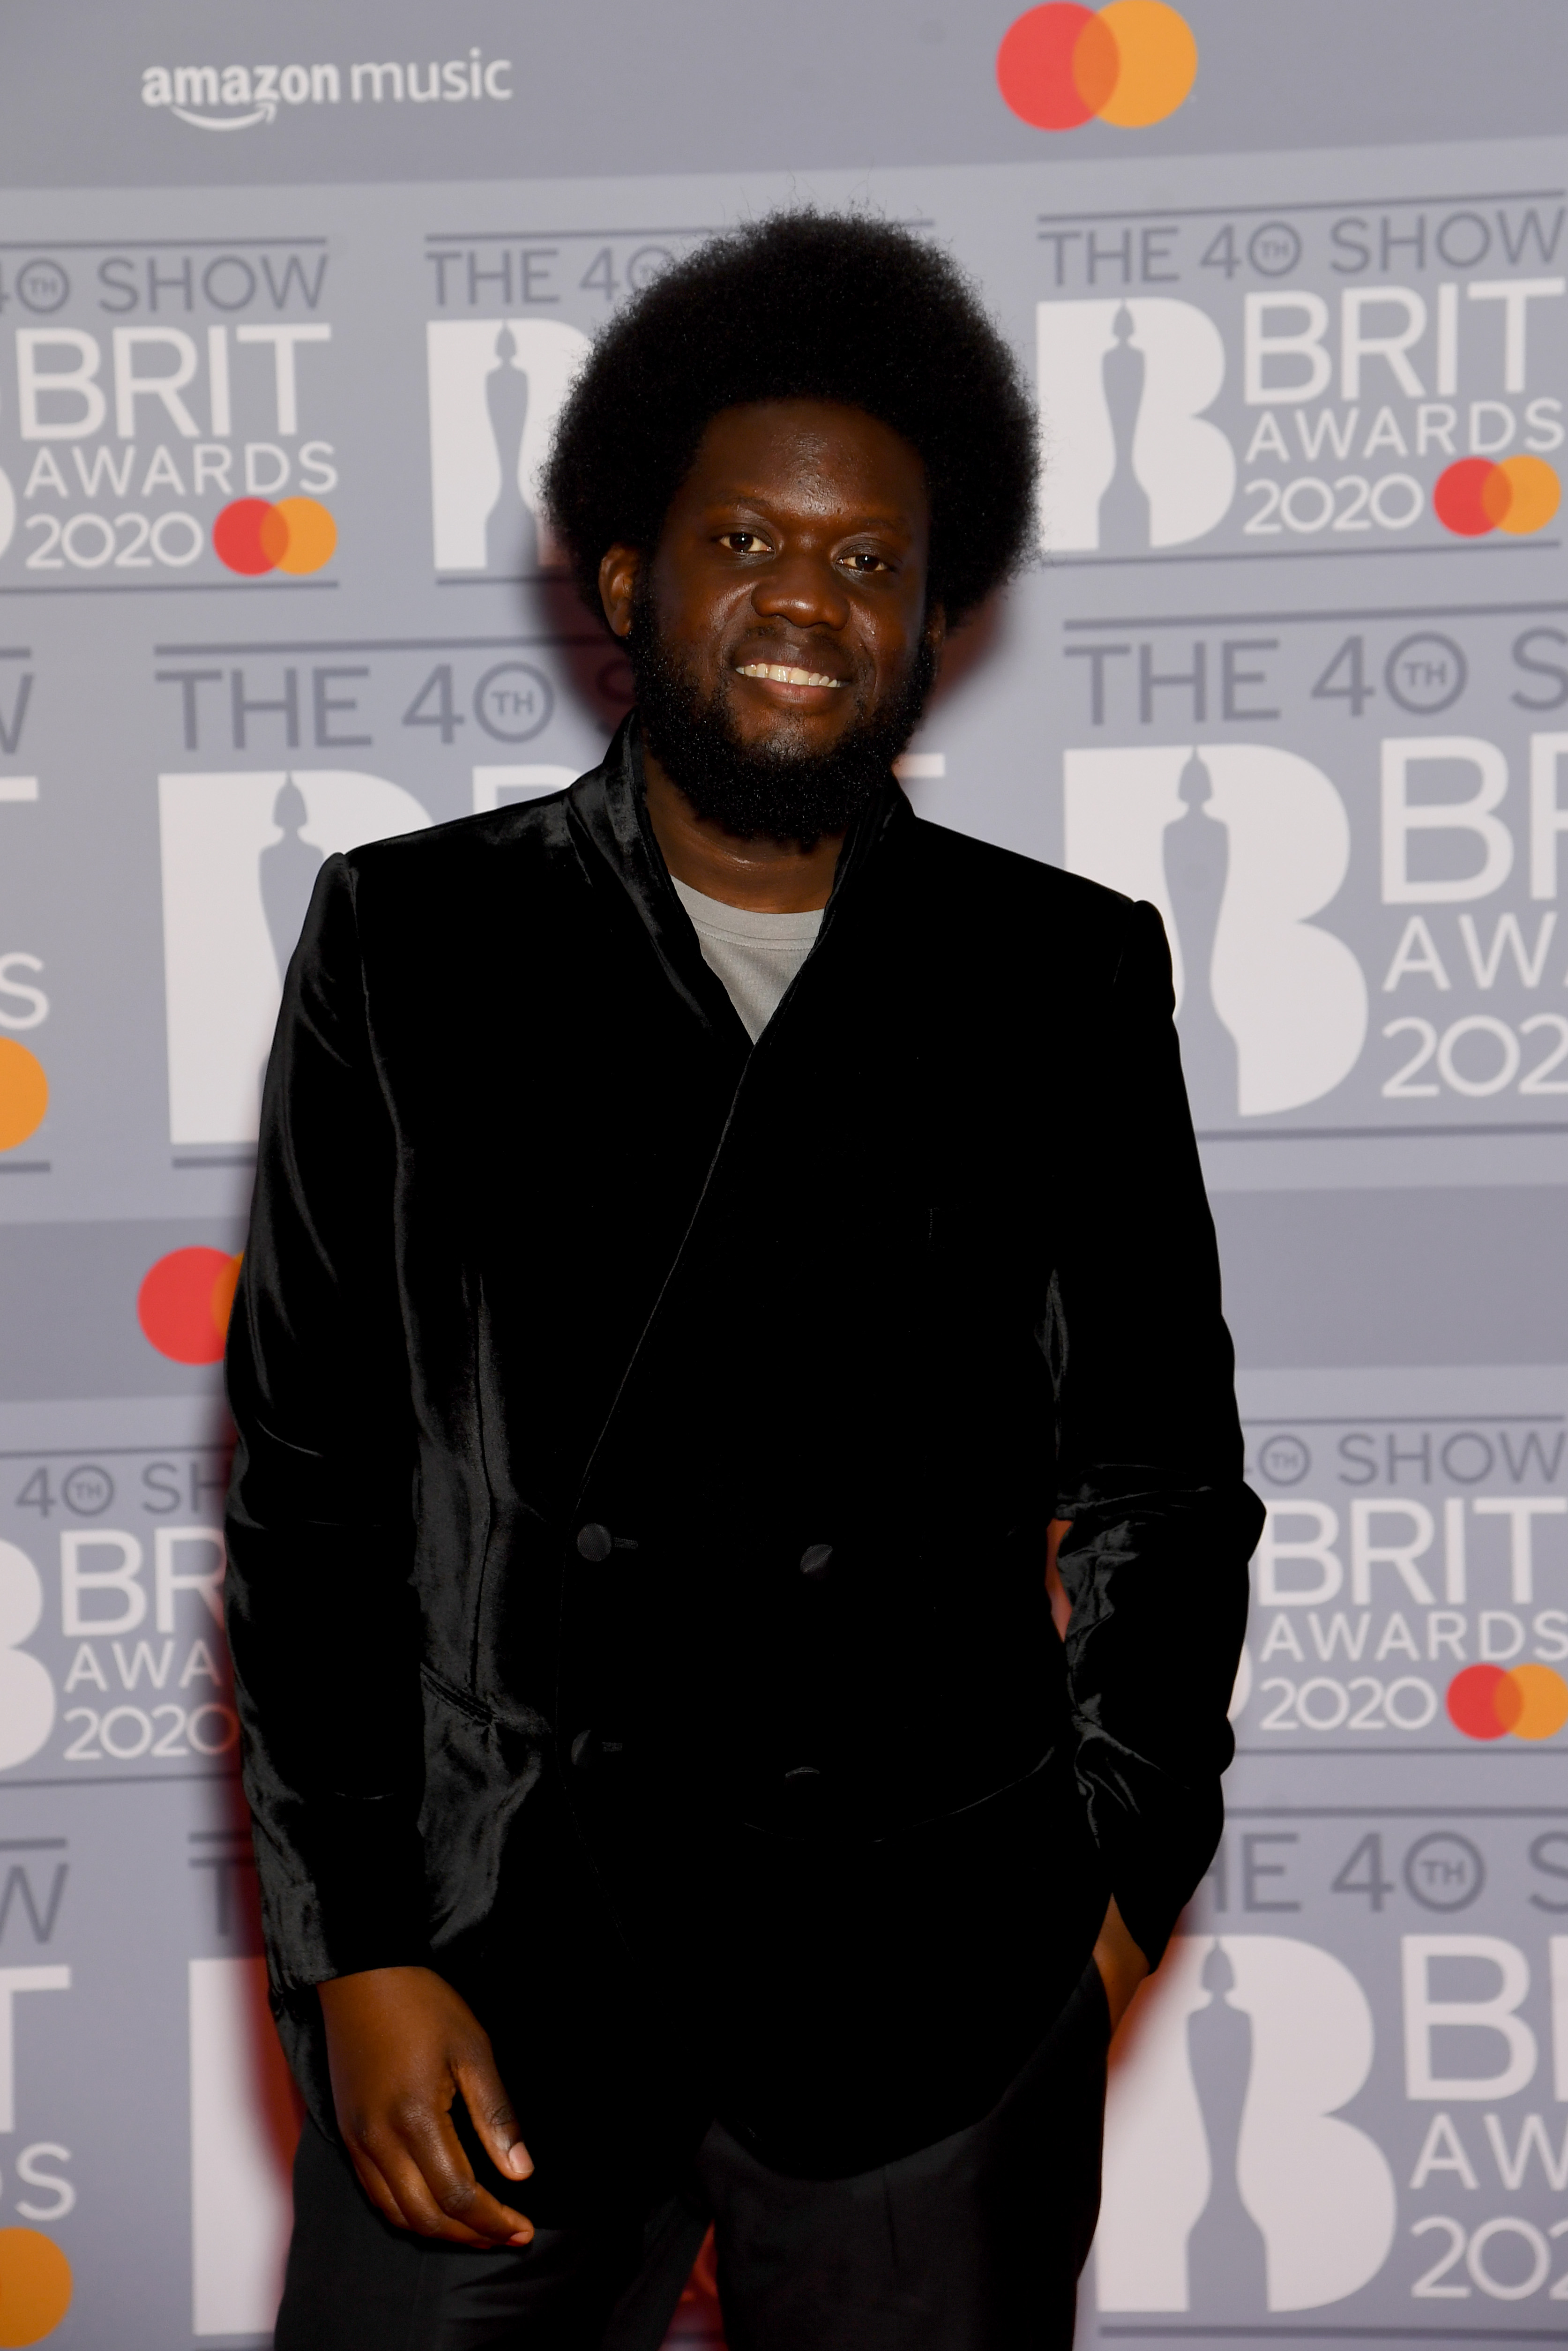 Michael Kiwanuka attends The BRIT Awards 2020 at The O2 Arena on February 18, 2020 in London, England. (Photo by Dave J Hogan/Getty Images)